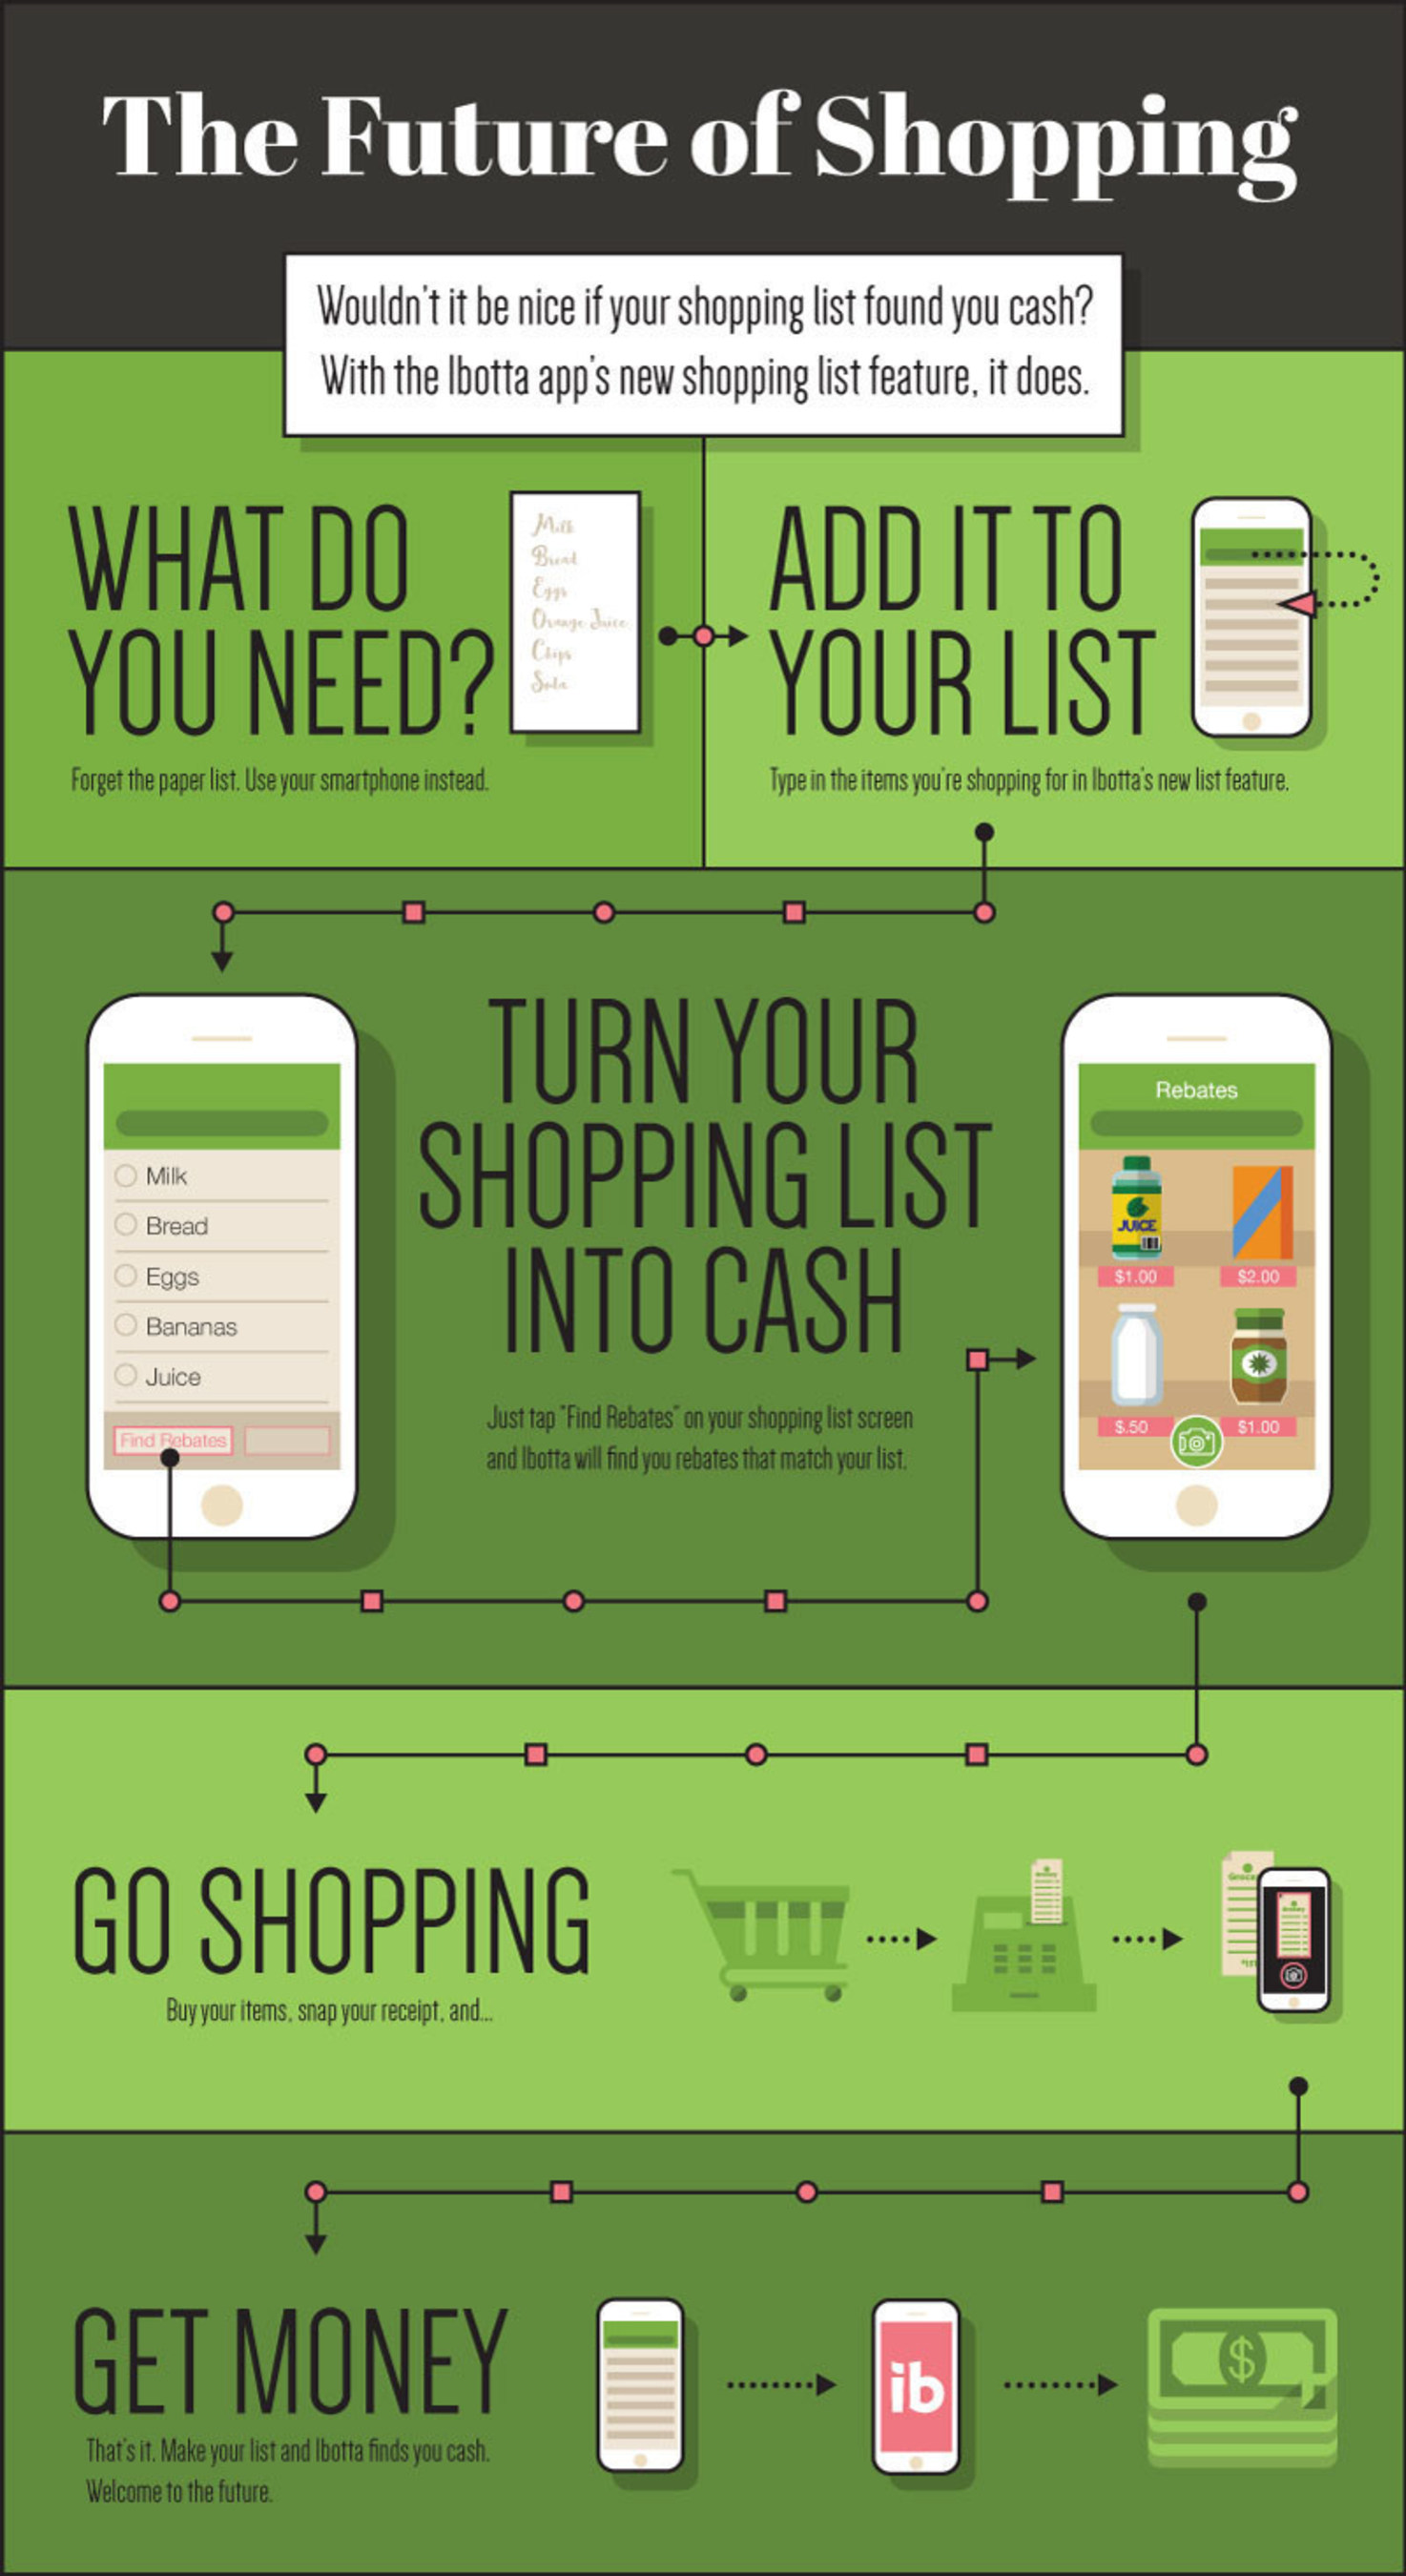 The future of shopping infographic from Ibotta